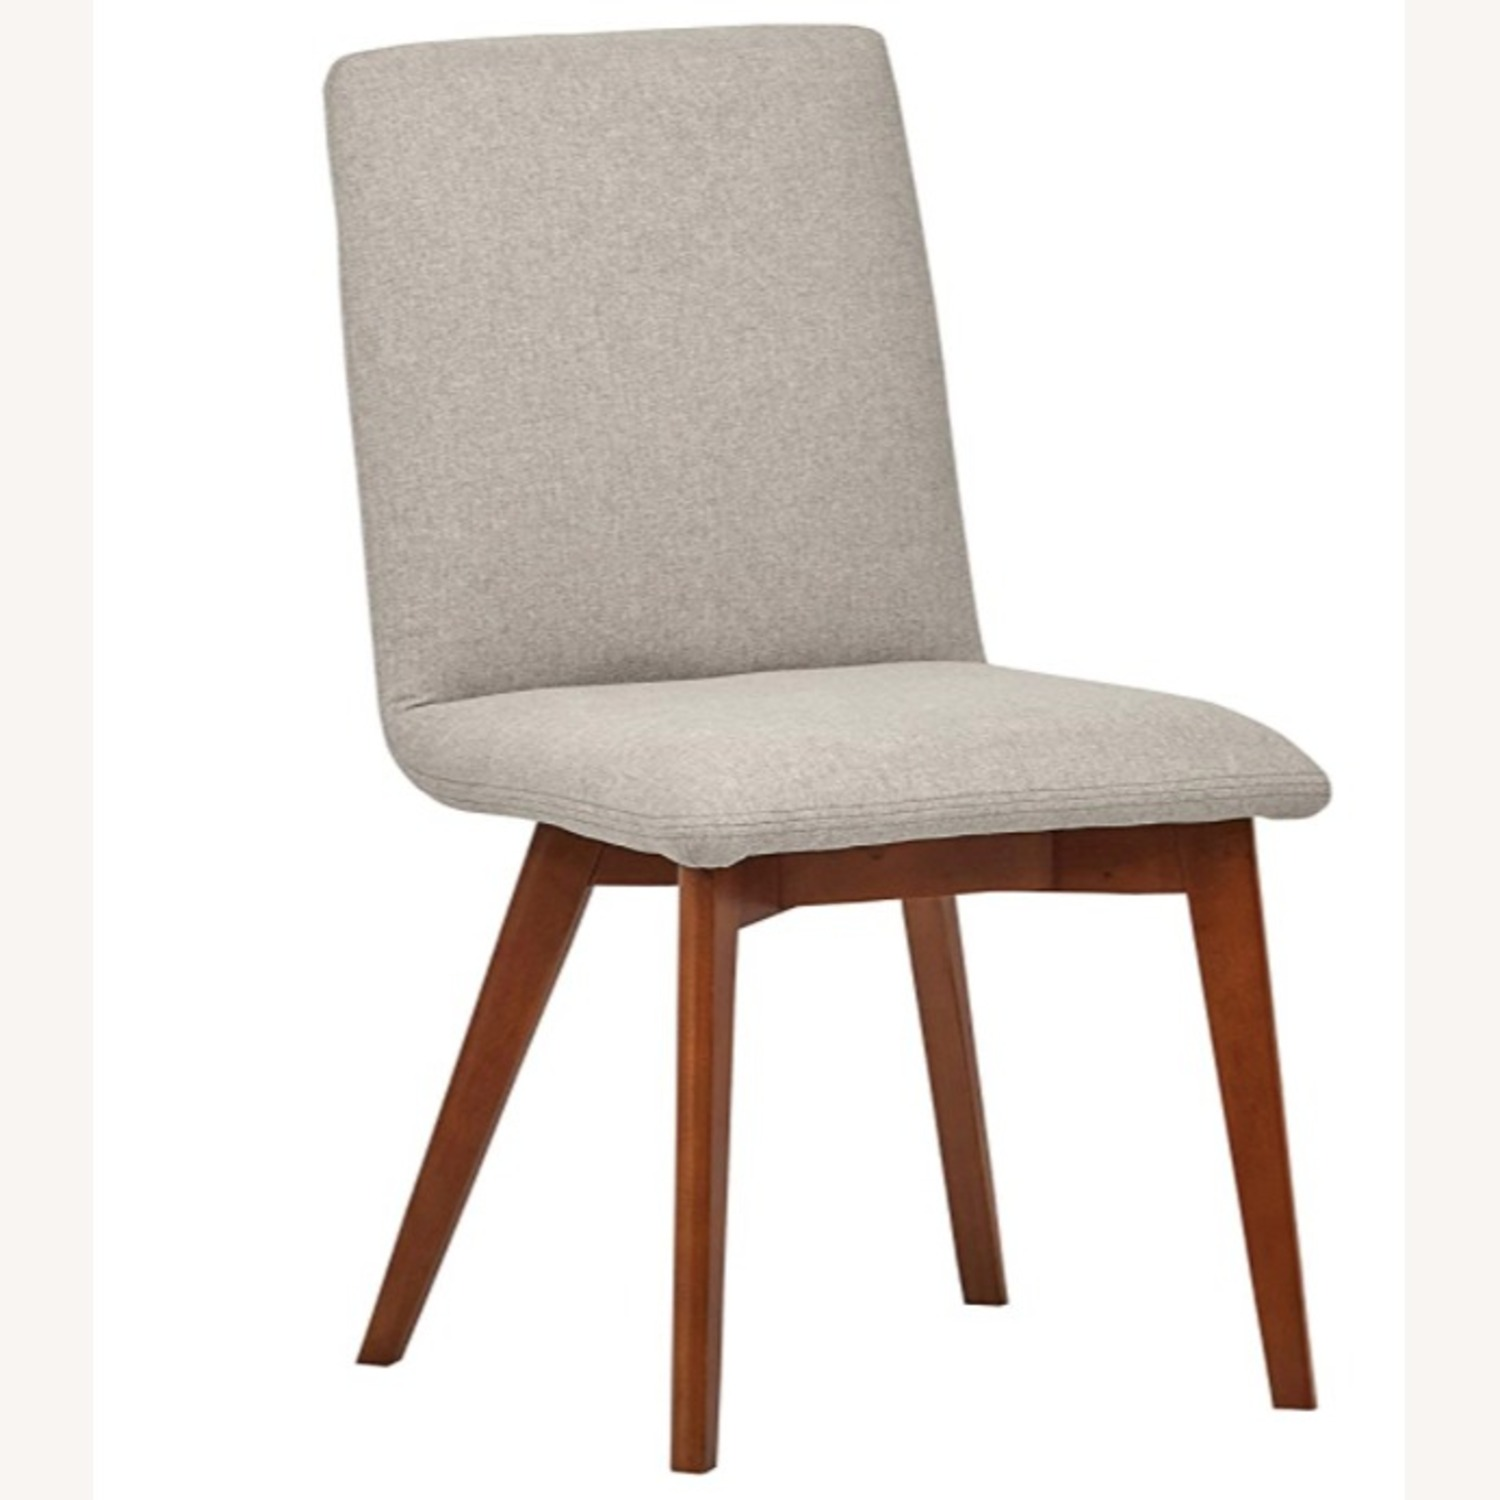 Mid Century Modern Grey Dining Chair Set of 2 - image-1